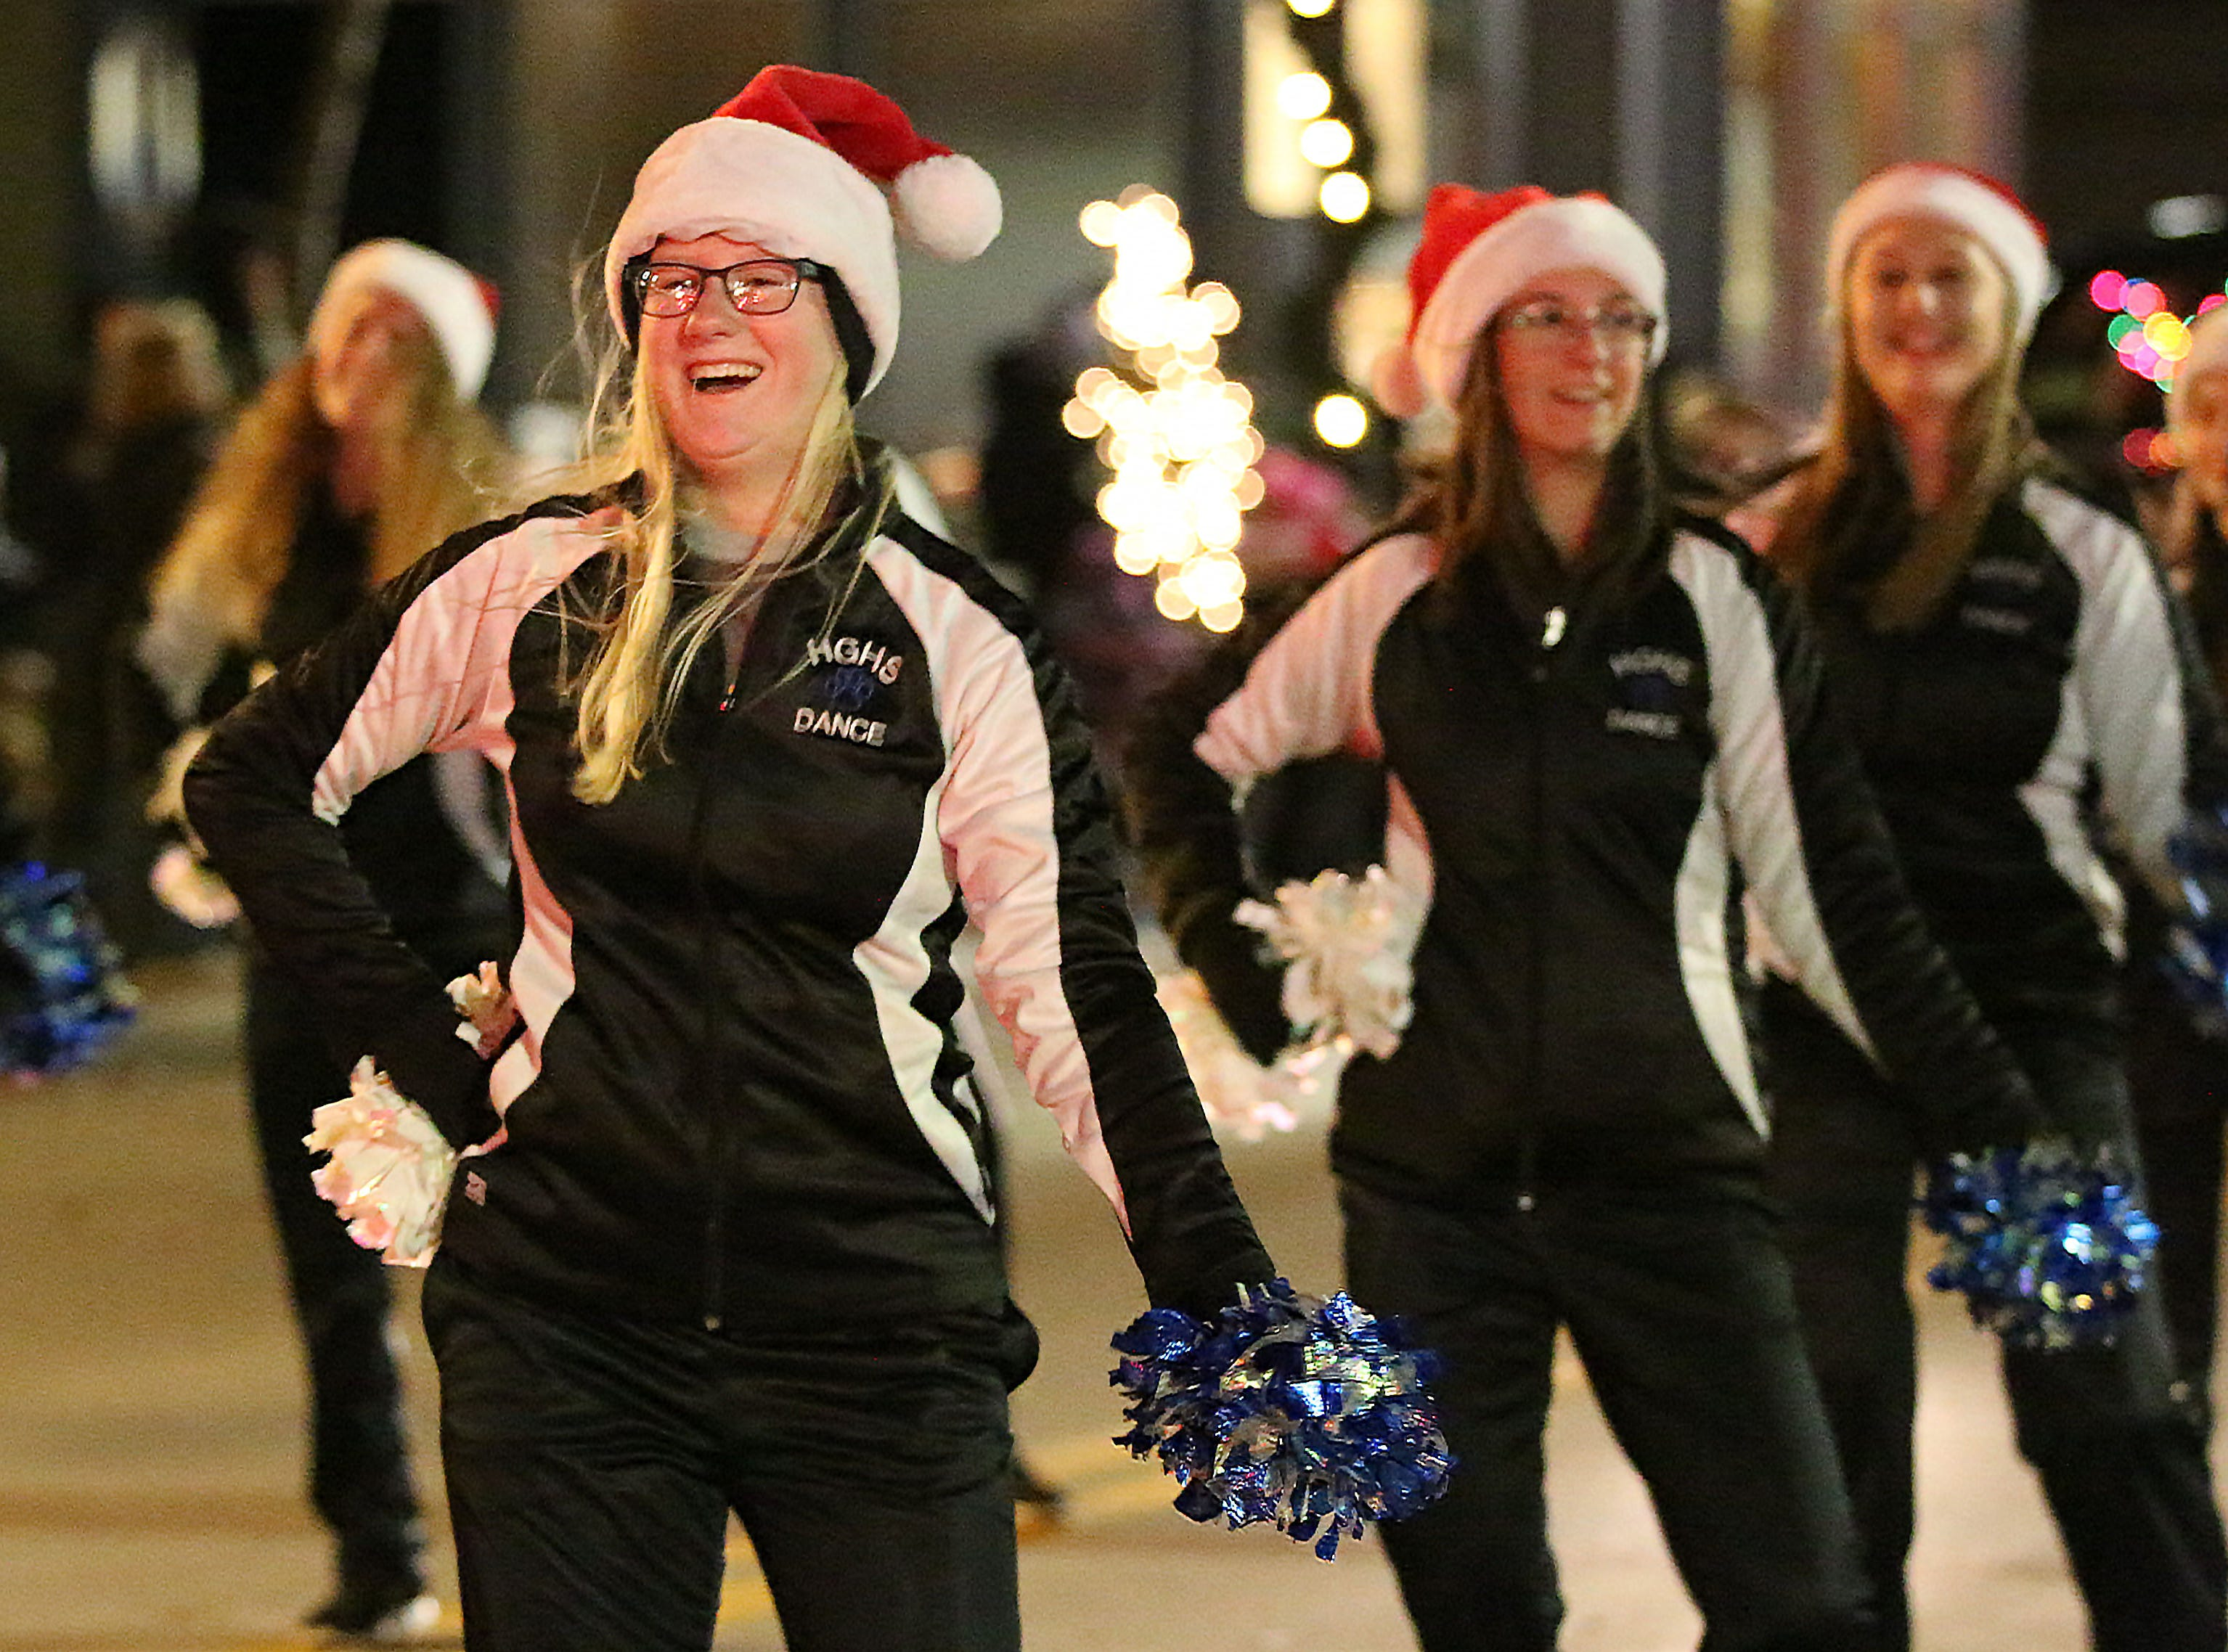 Howard Grove's cheerleading squad performs during the 26th Annual Jaycees Holiday Parade, Sunday, November 25, 2018 in Sheboygan, Wis.